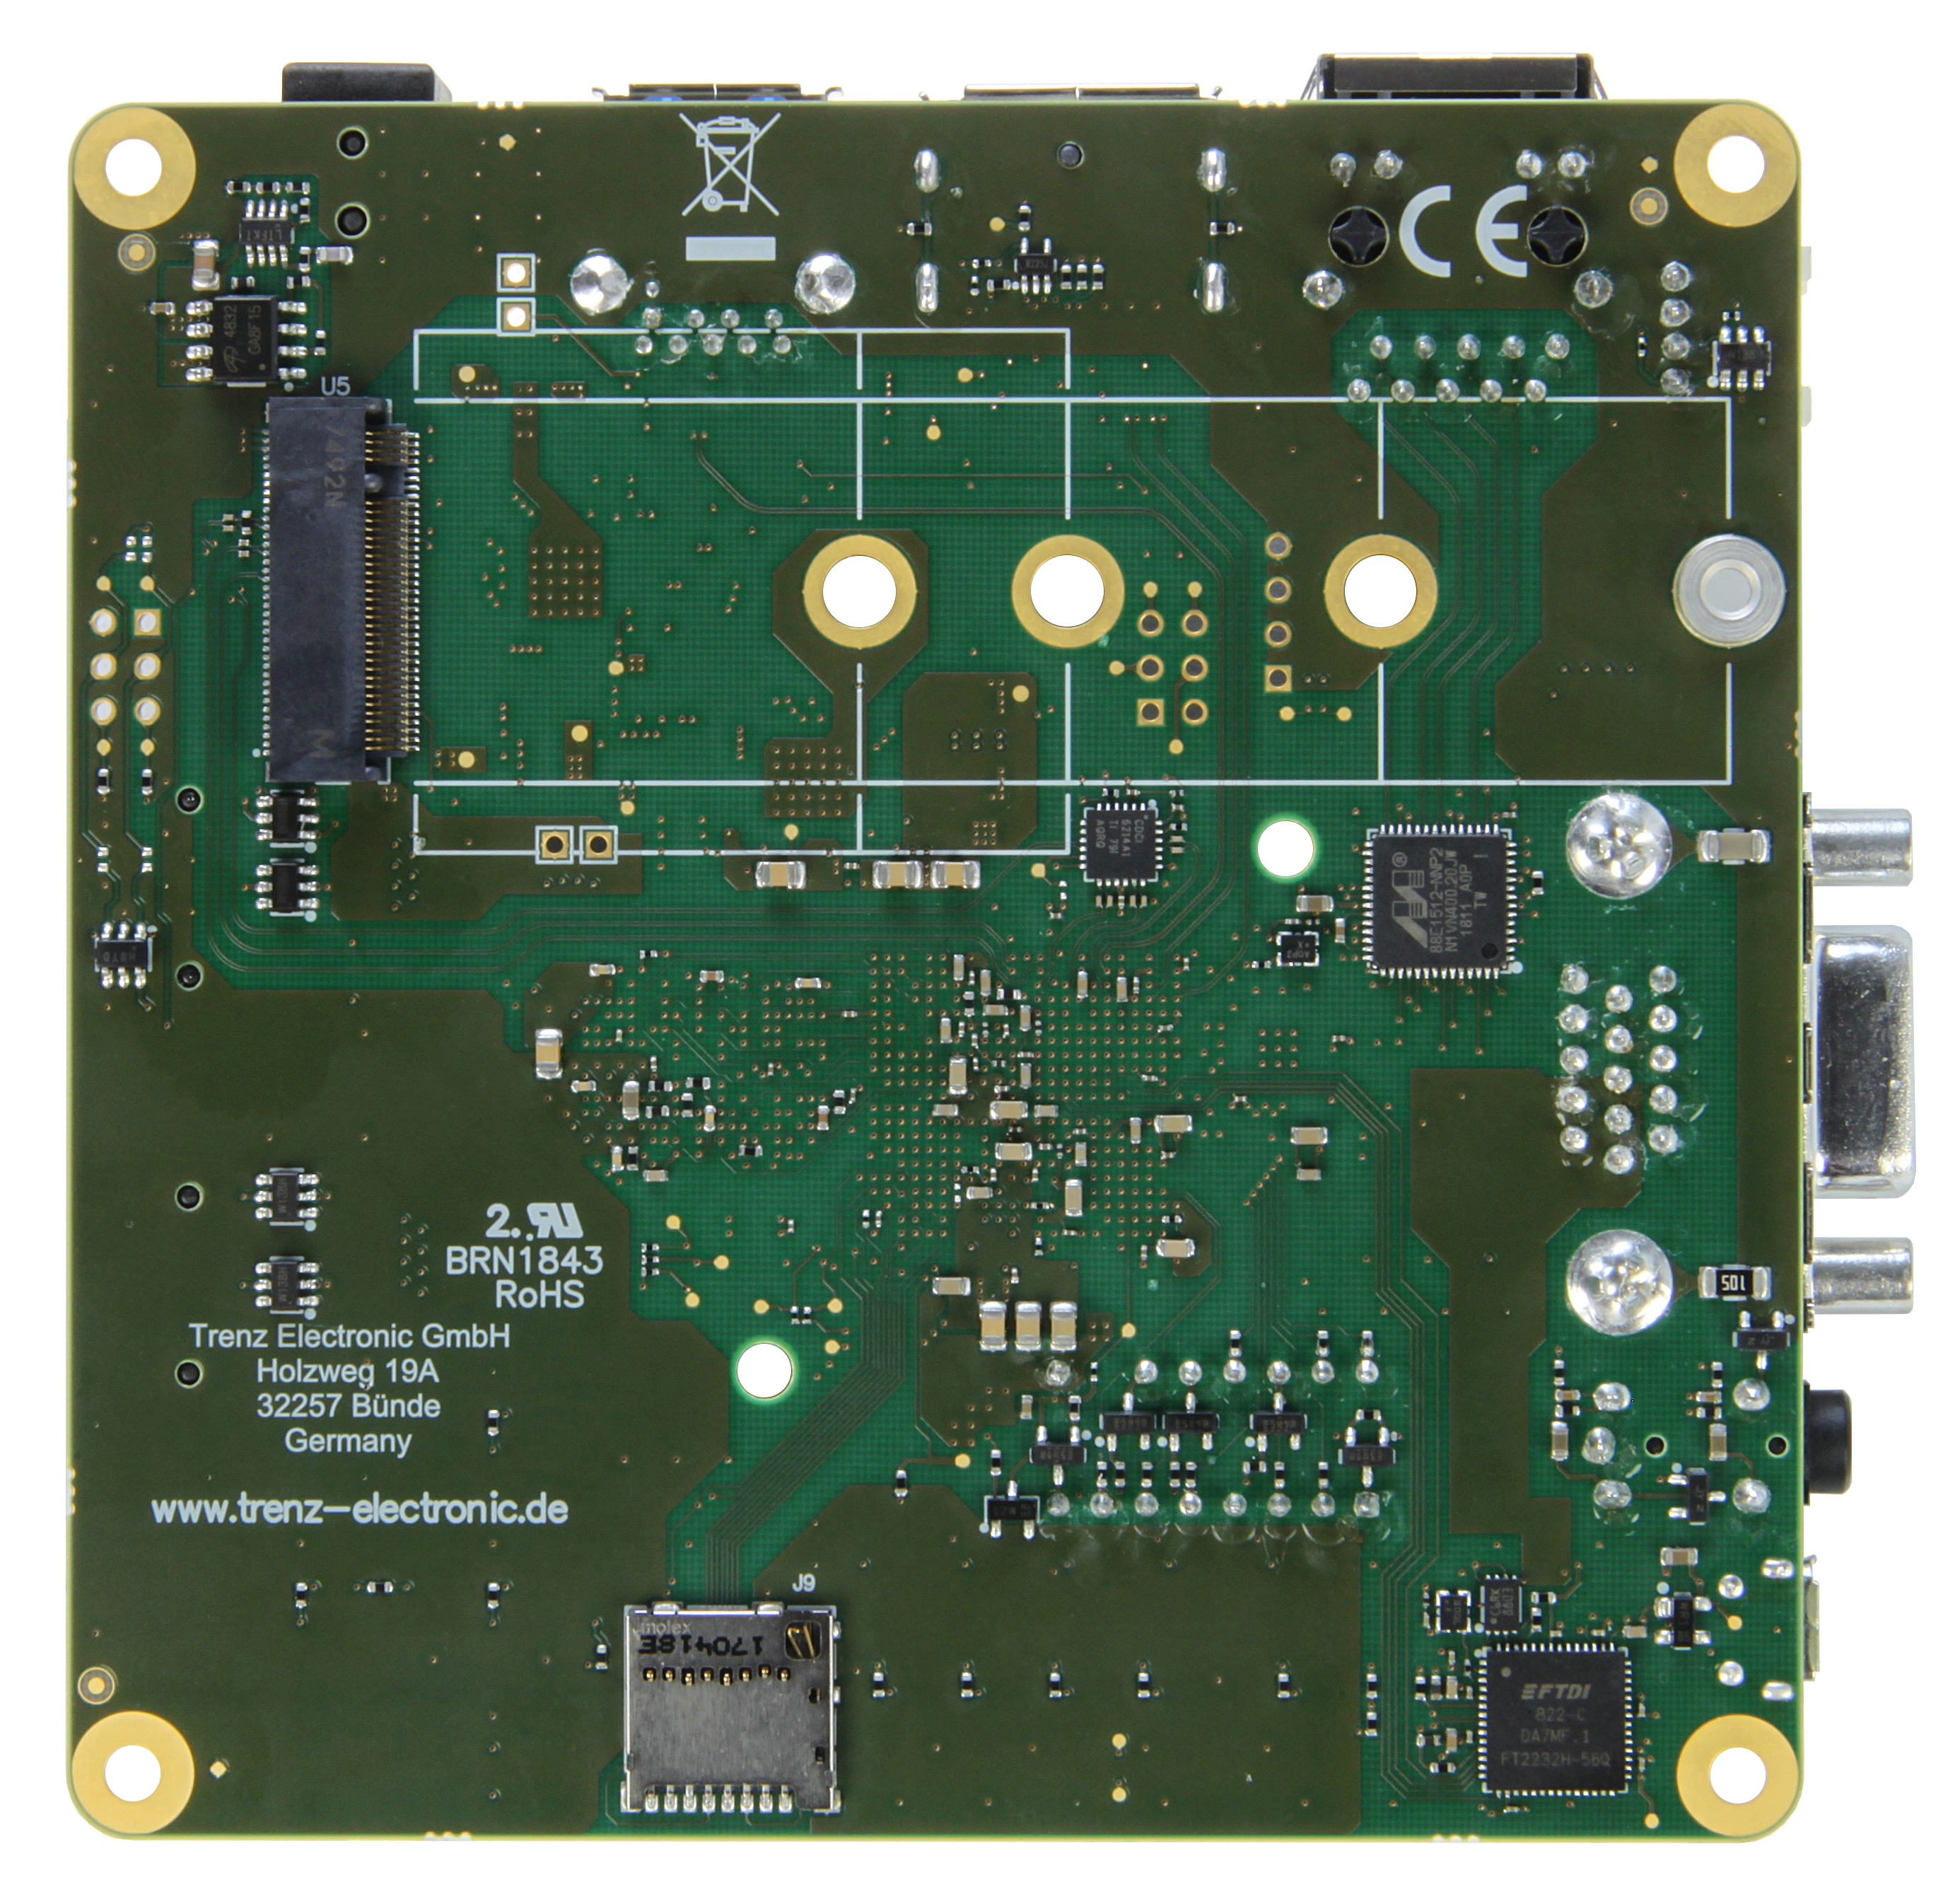 Mpsoc Module With Xilinx Zynq Ultrascale Zu4eg 1e 2 Gbyte Ddr4 5 Usb To Serial Port Controller Tusb3410 Integrated Circuit Components Te0802 01 2cg Bottom